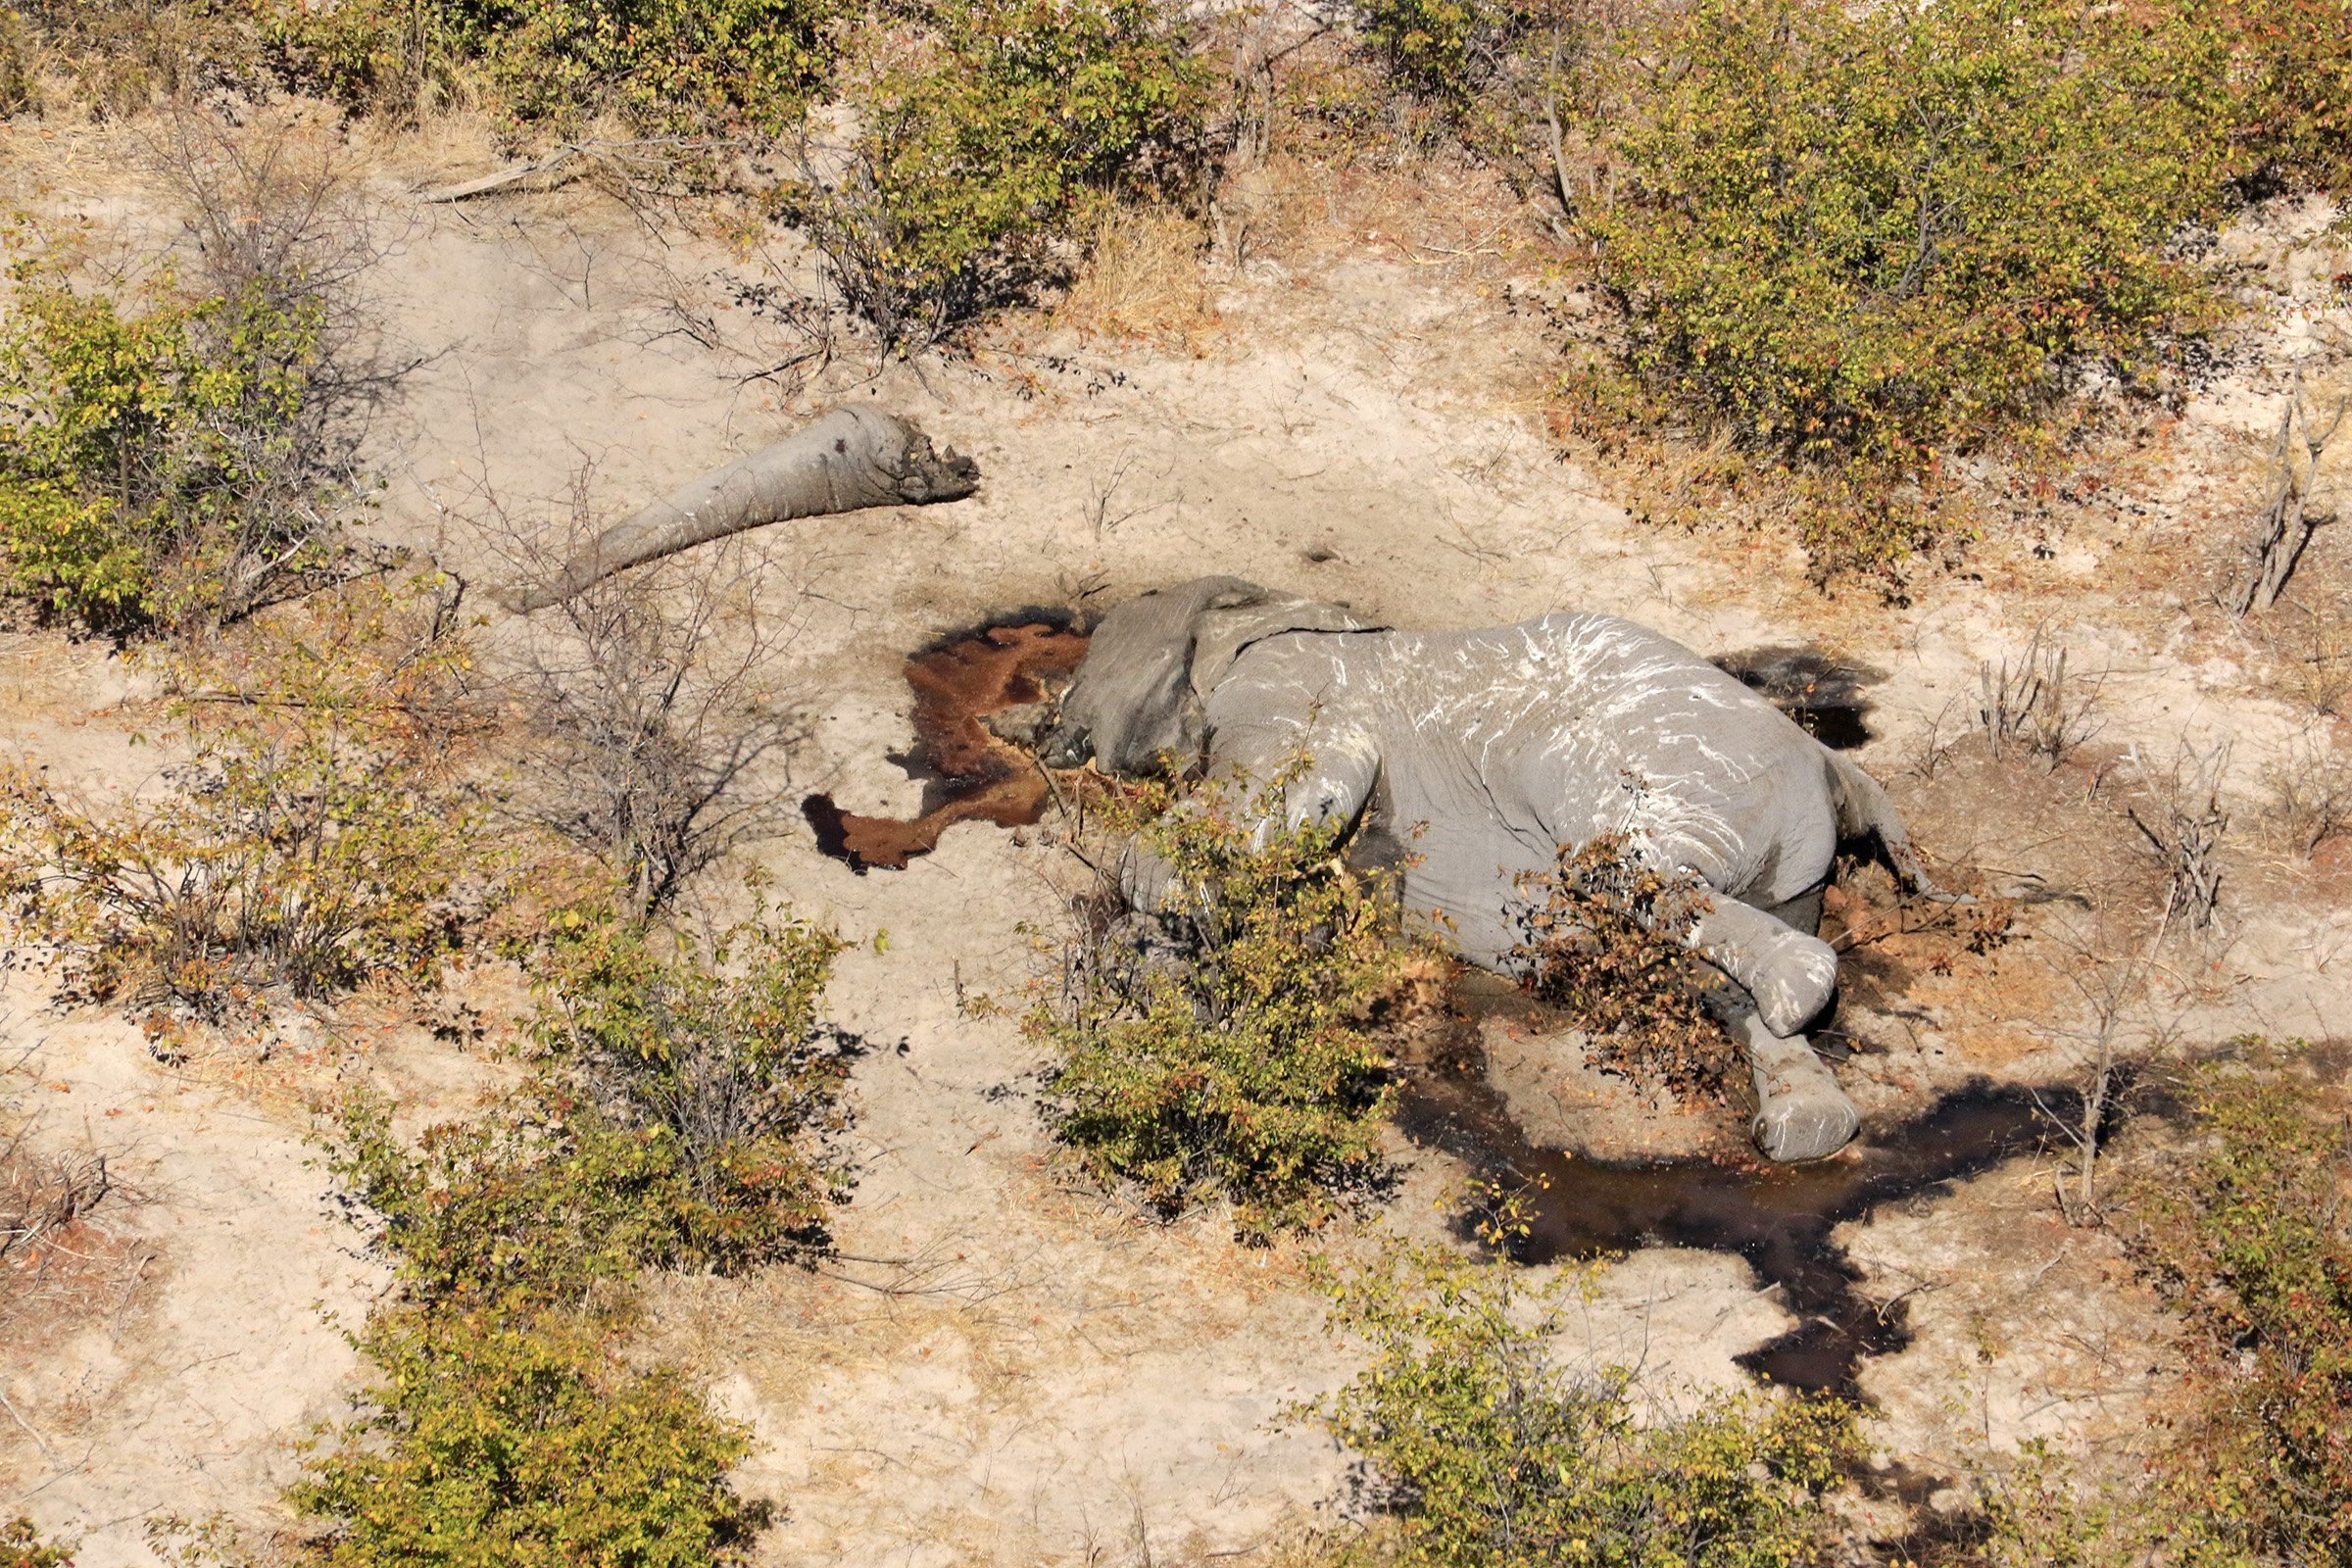 The carcas of a poached elephant photographed by Elephants Without Borders during its recent census of the animals in Botswan